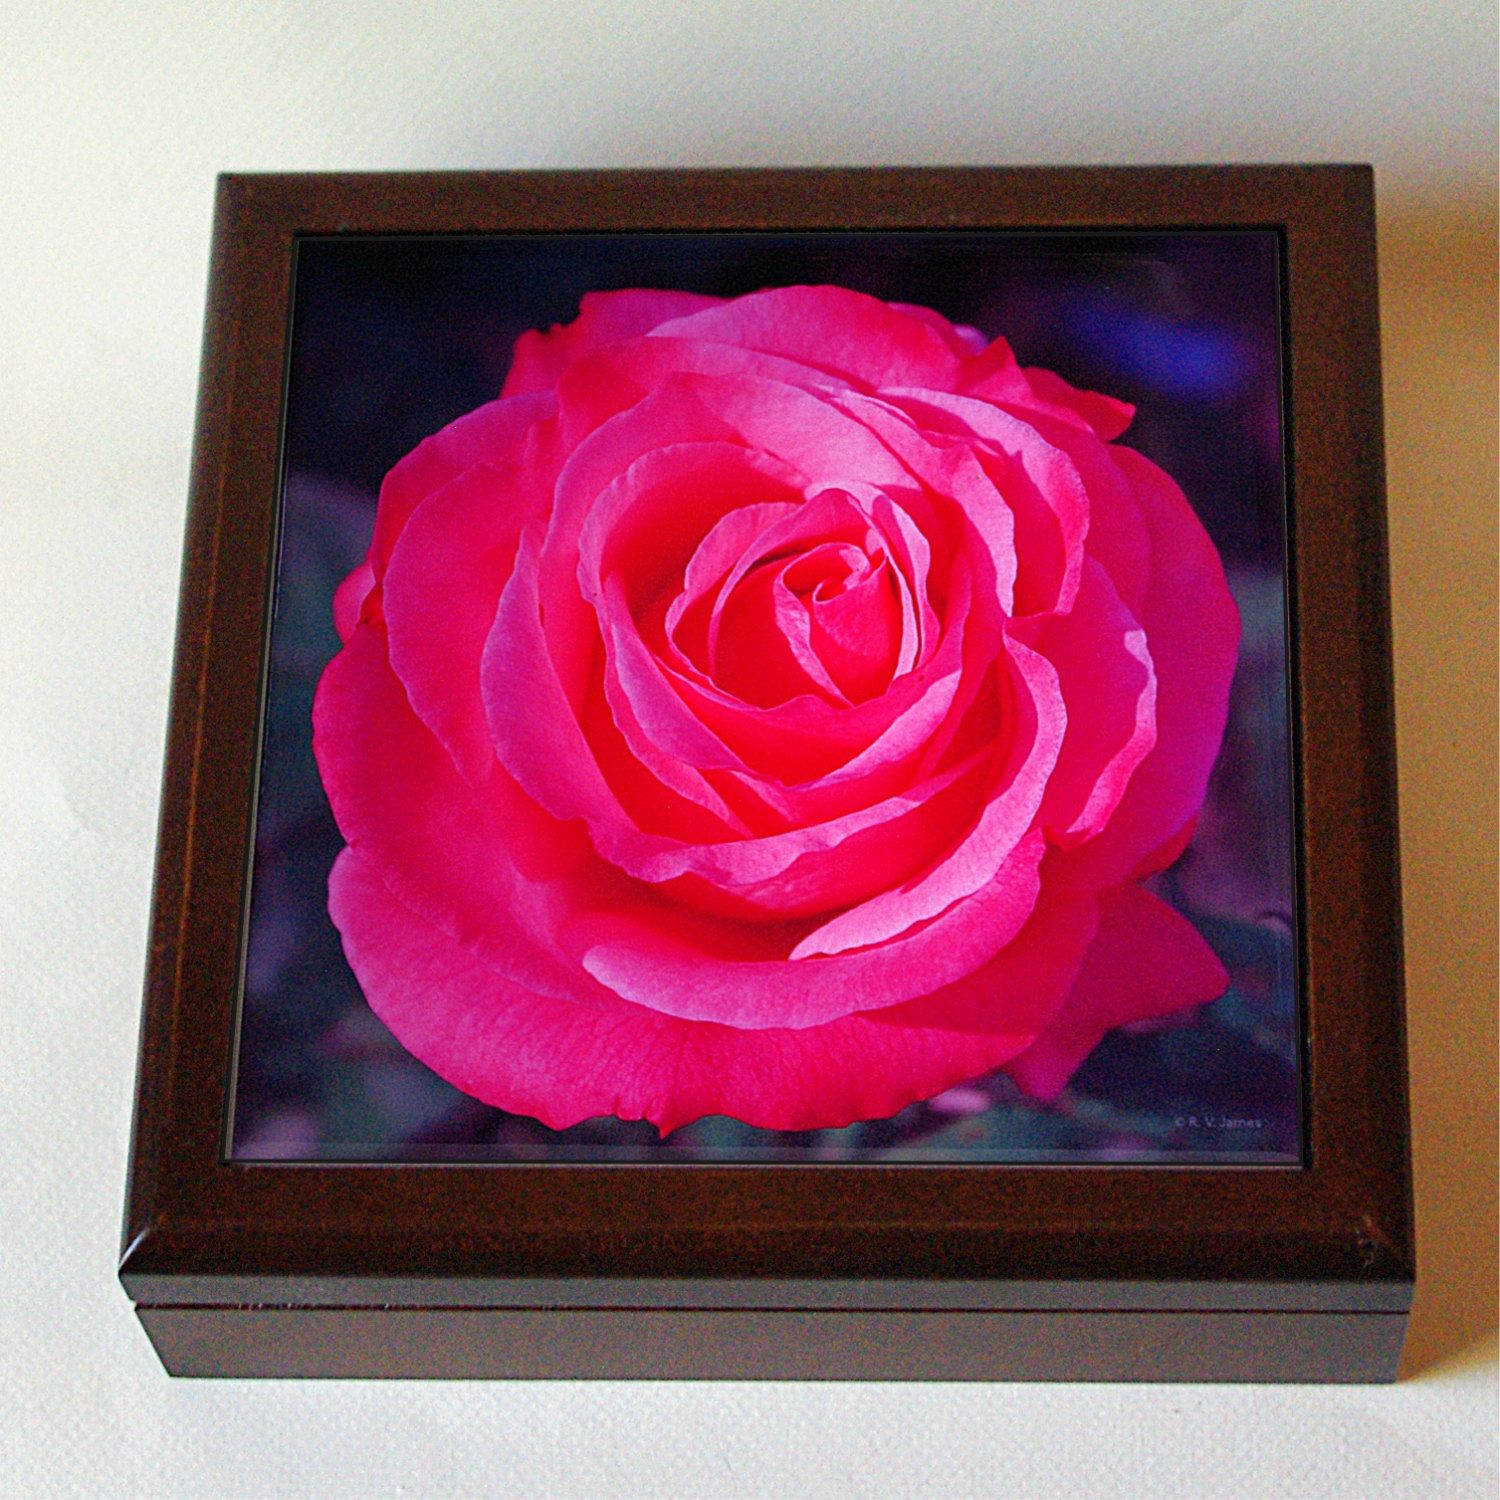 Wood keepsake box with rose ceramic tile, Cherish rose, pink, coral, jewelry box, mother's day ...